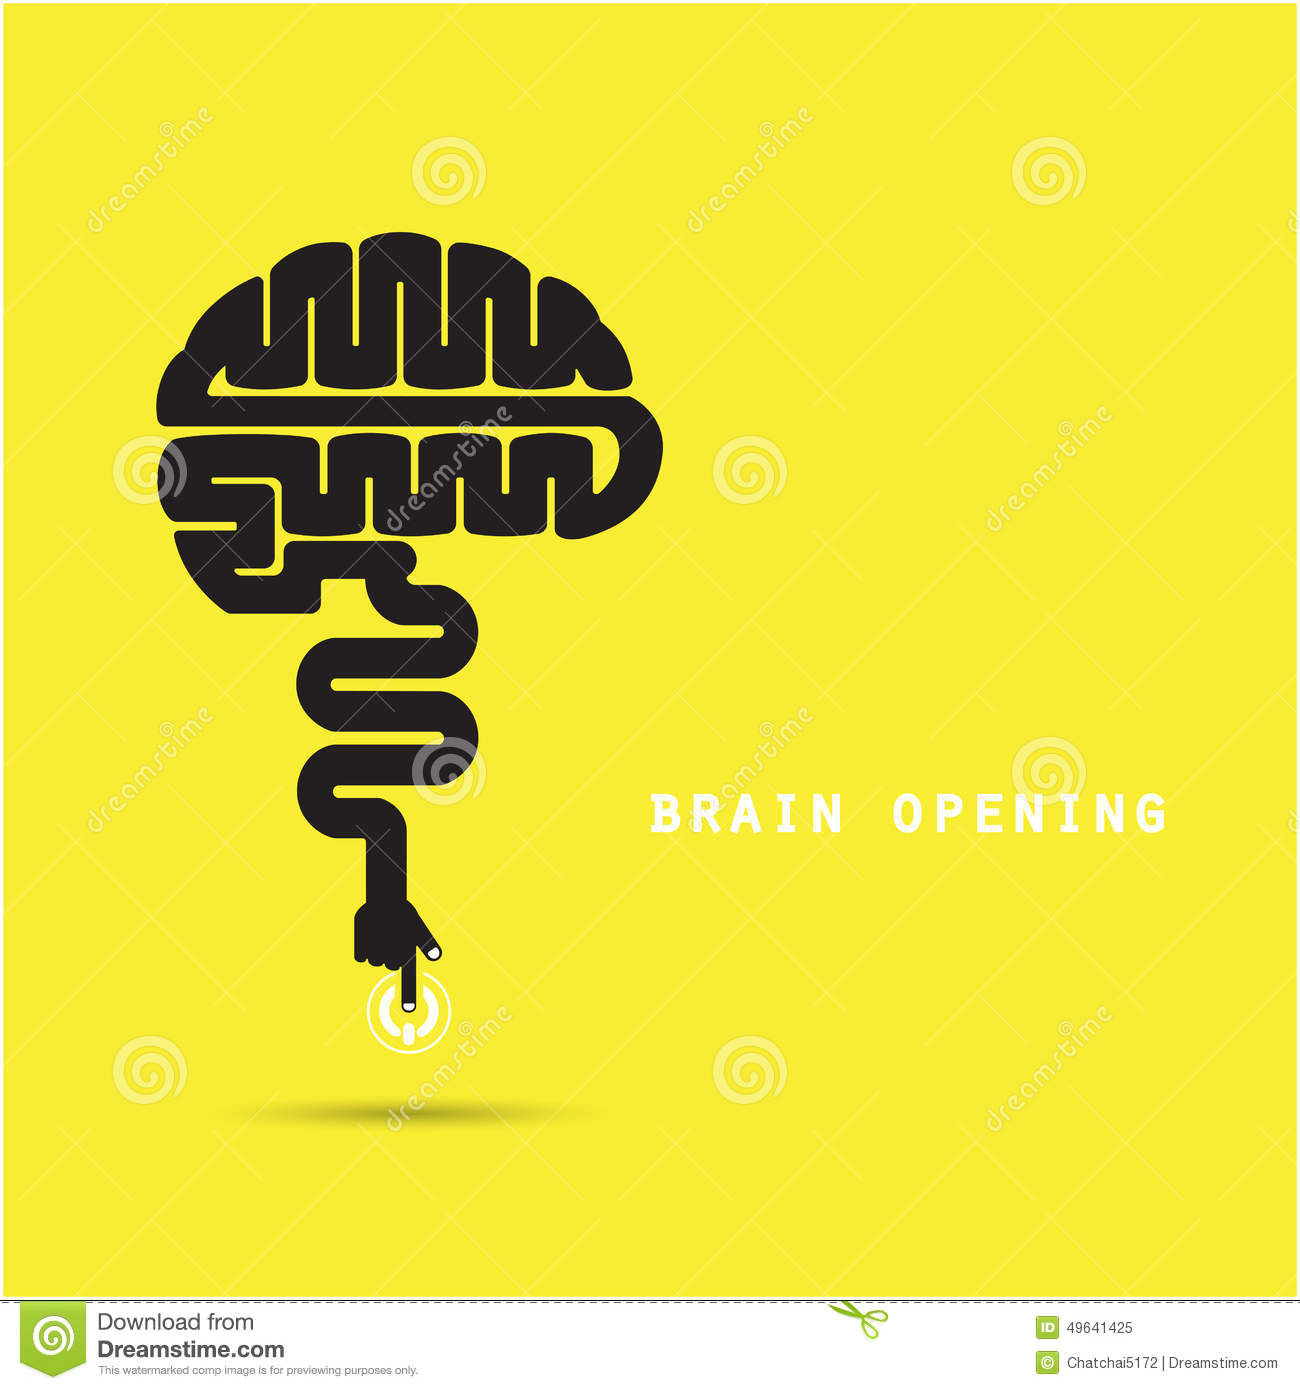 Brain Opening Concept.Creative Brain Abstract Vector Logo ...